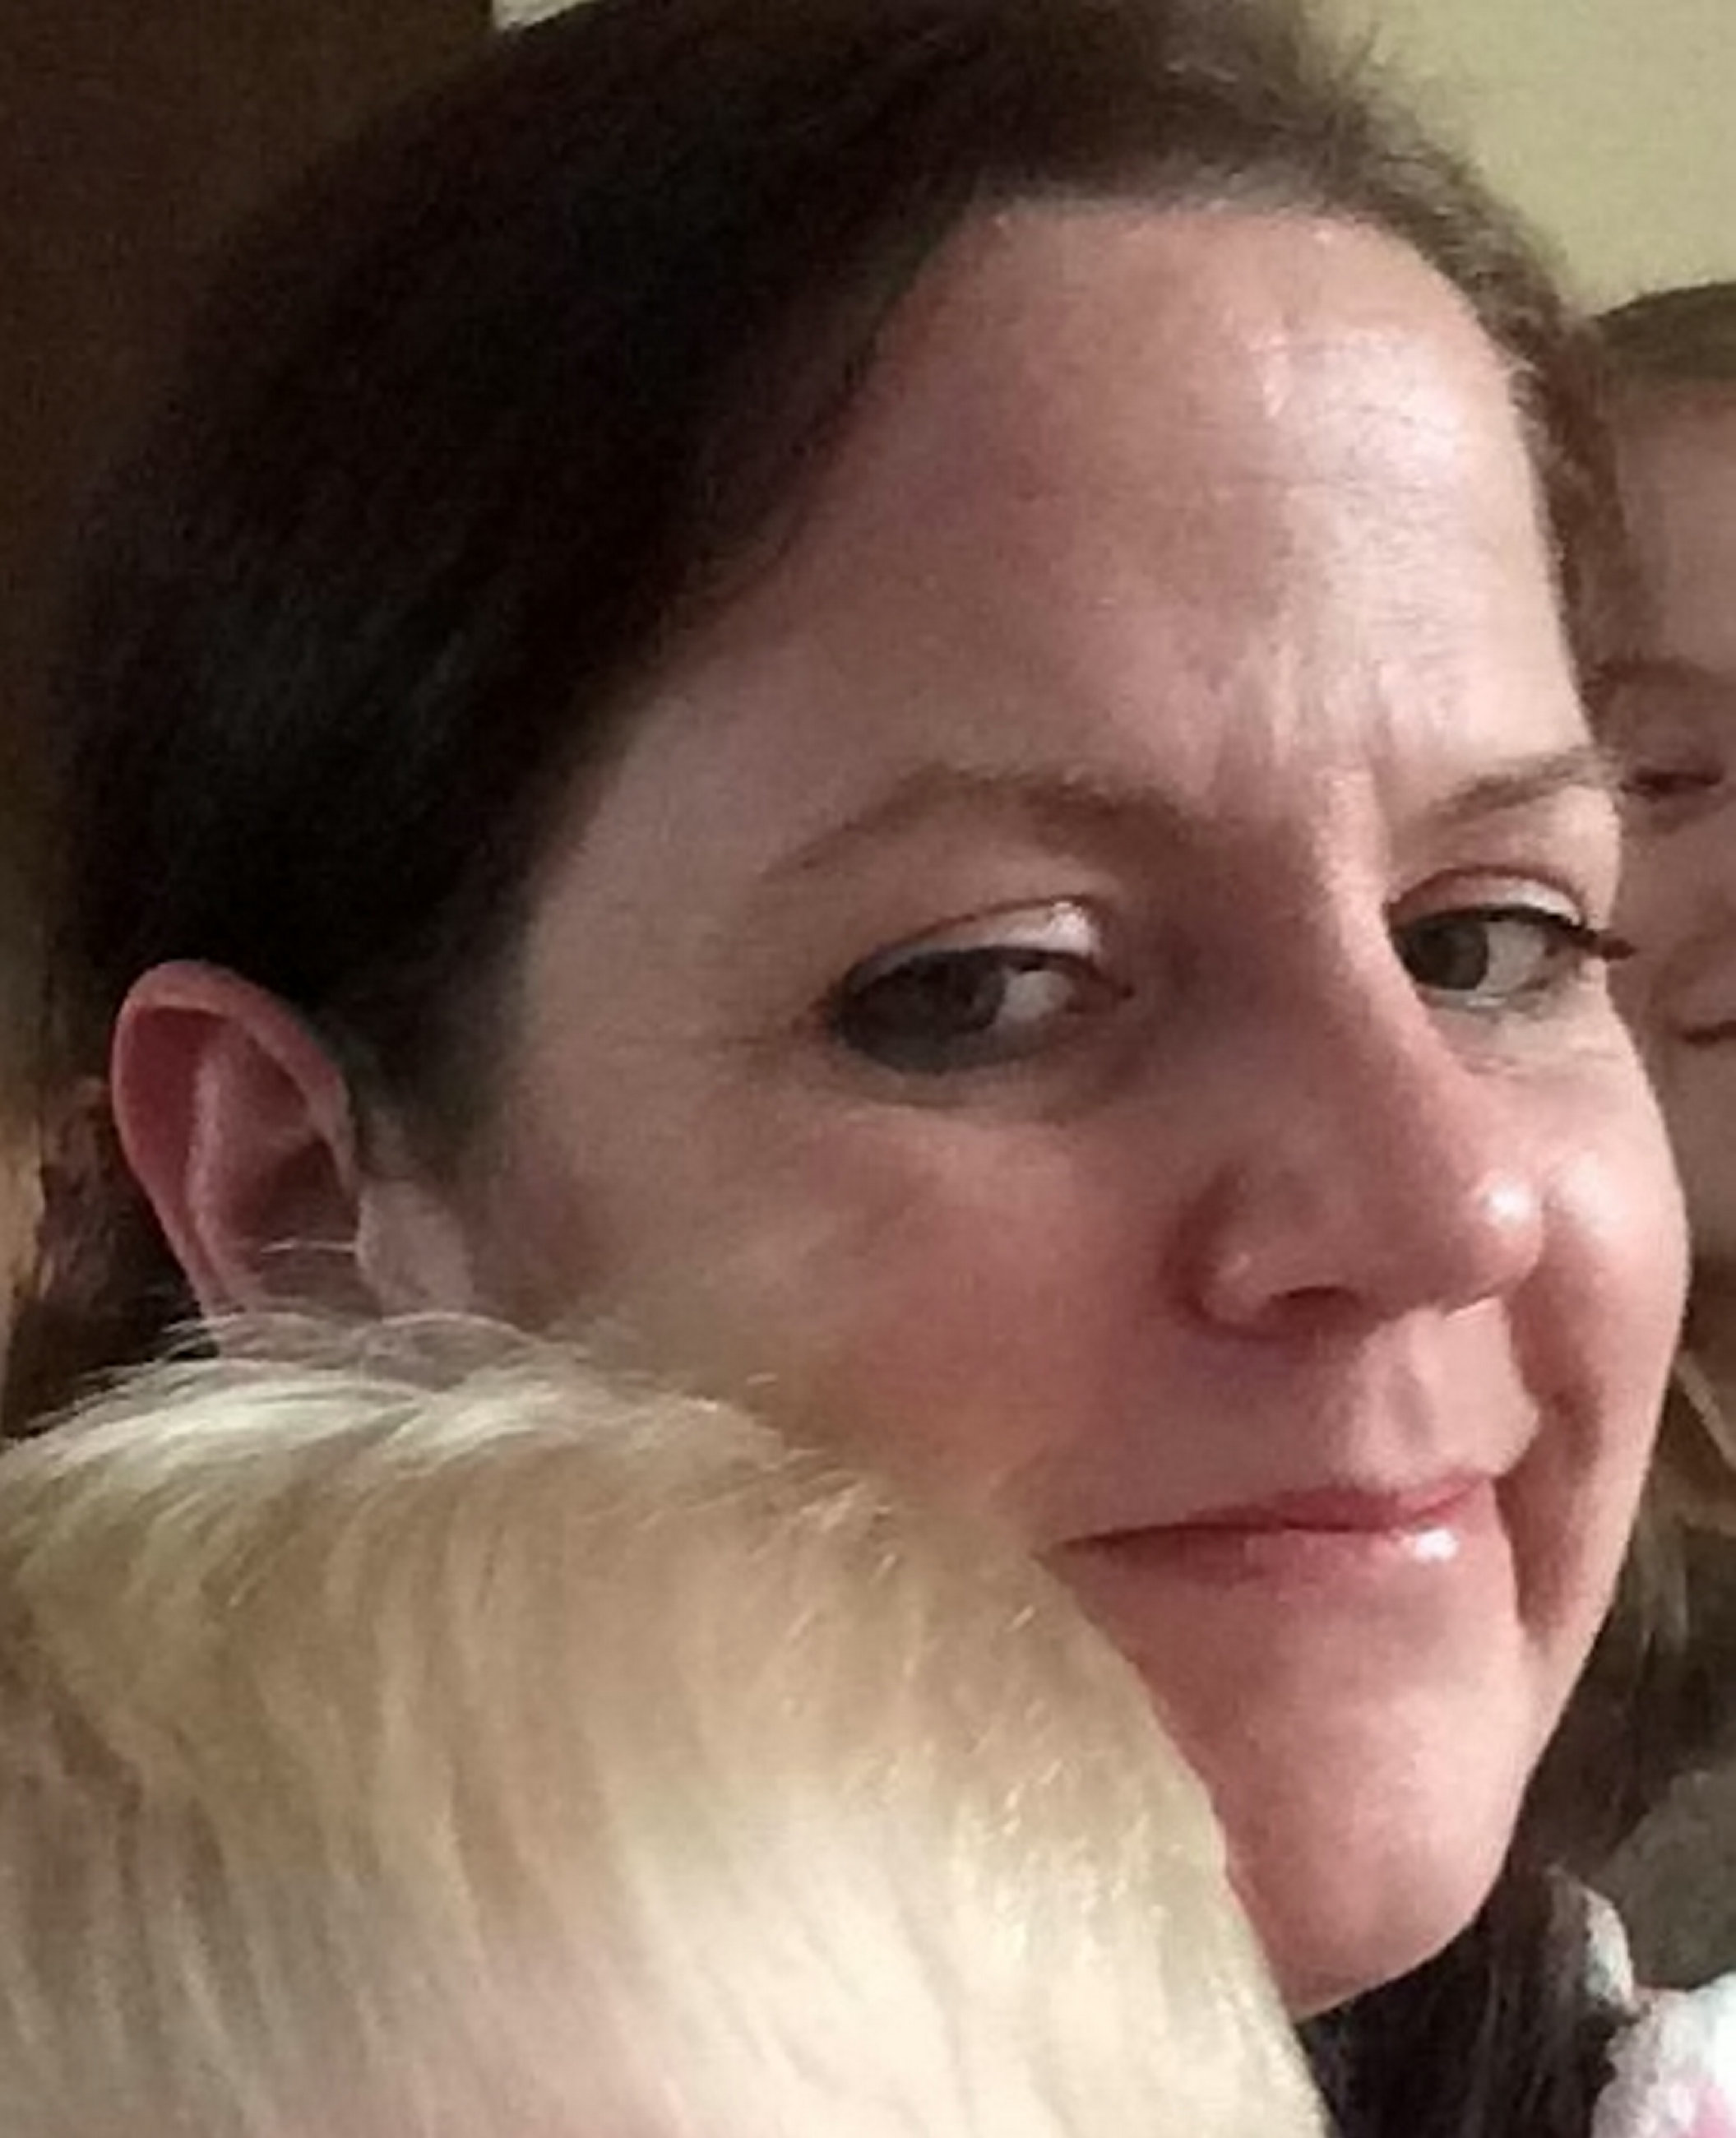 Mum Of Four Found Dead Wearing Coat And Scarf In Freezing Flat After Benefits Cut SWNS ELAINE MORRALL 03 1